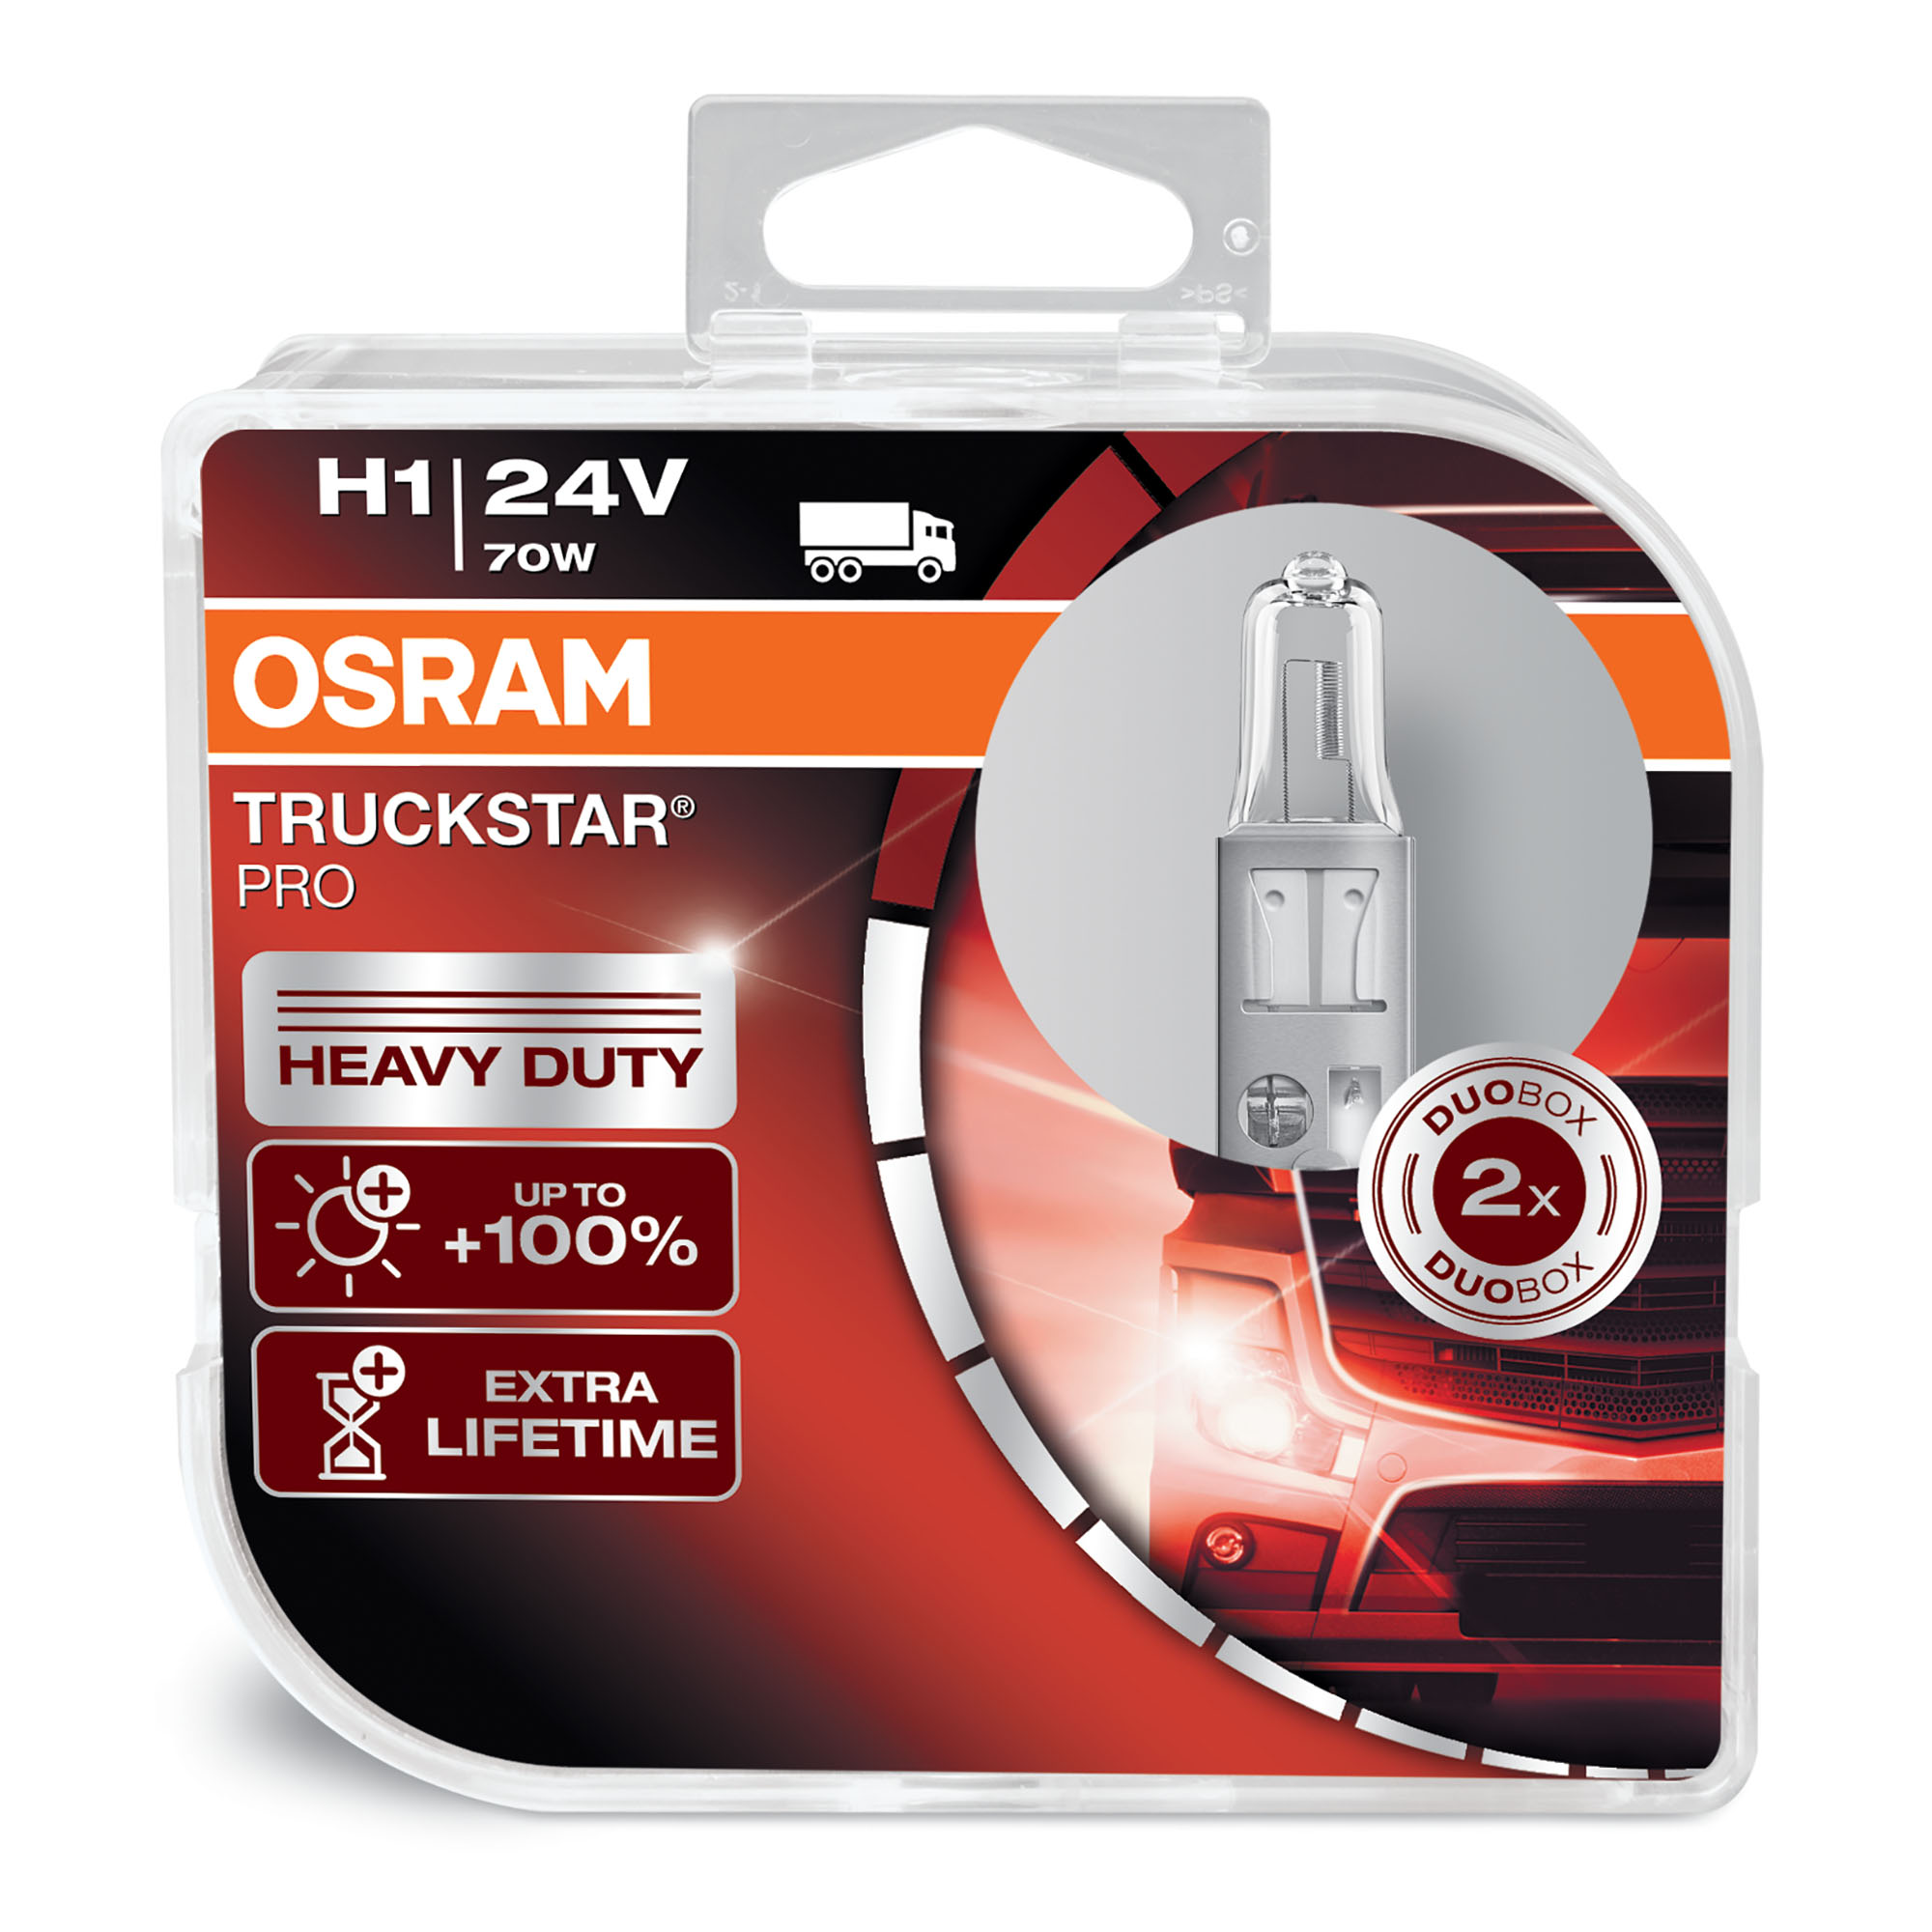 Osram Truckstar Pro H1 24v 70w Headlight Bulbs Heavy Duty